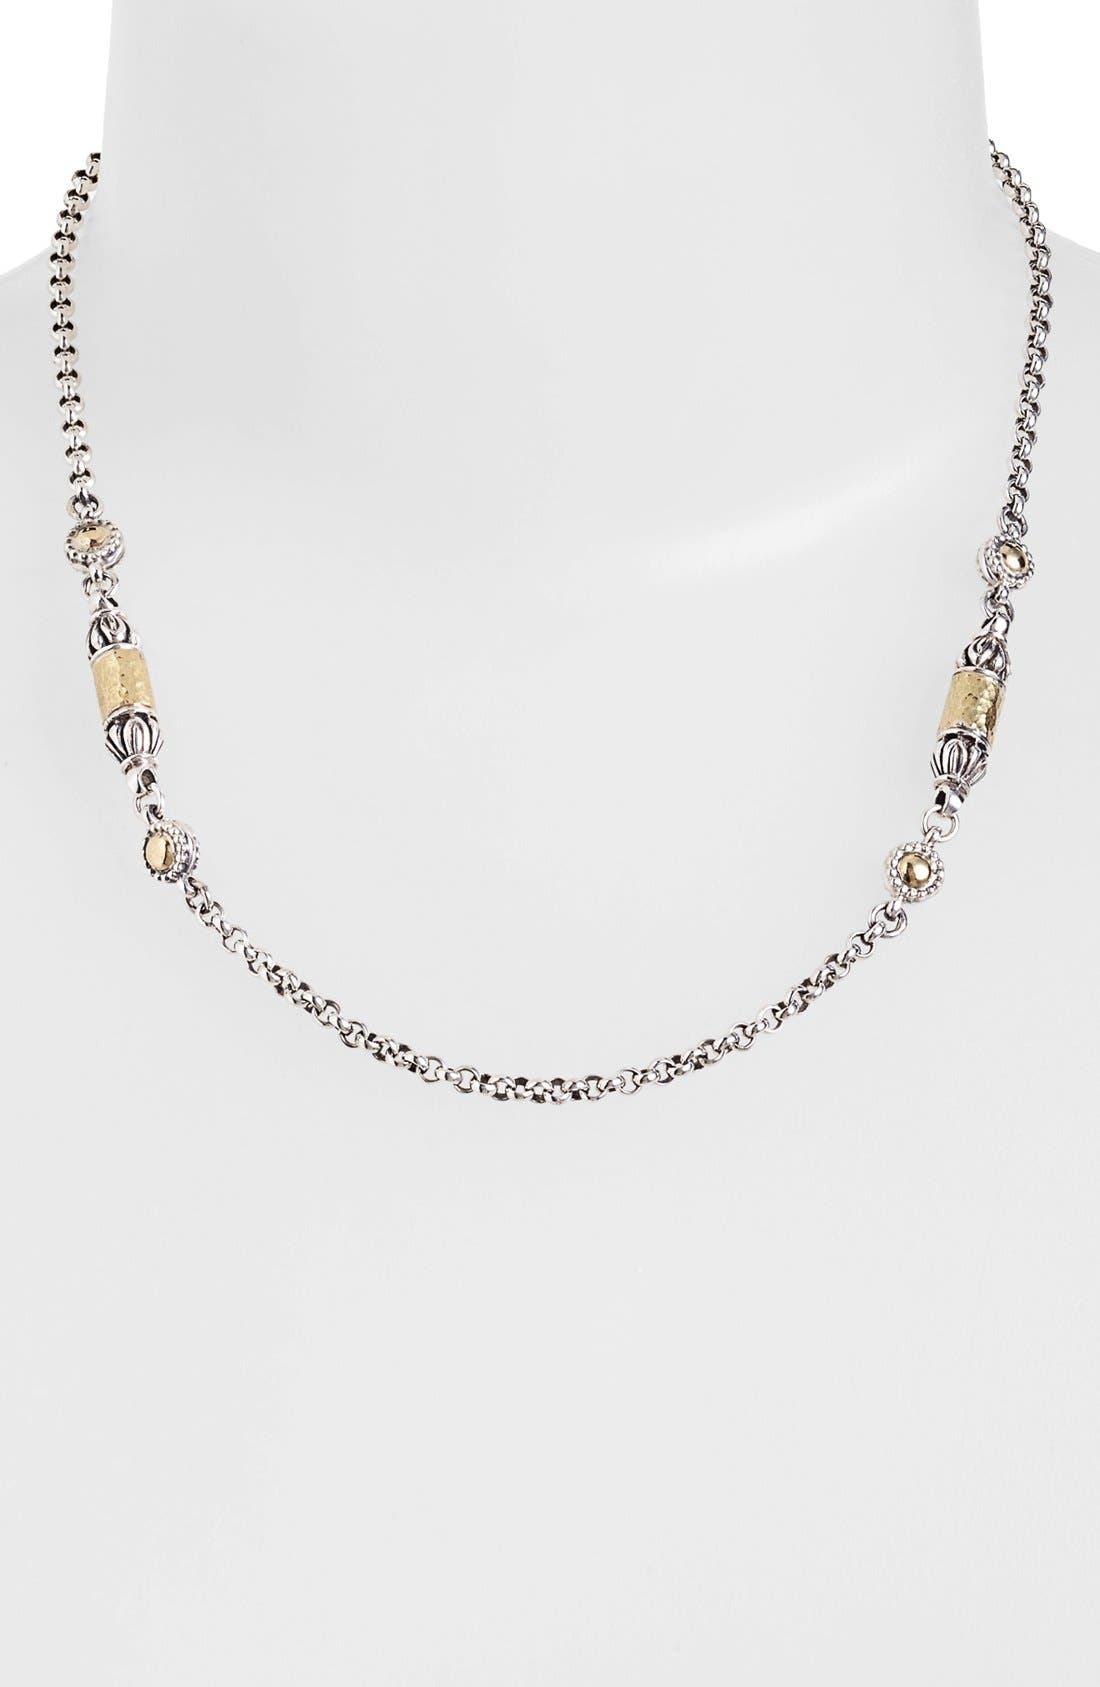 'Classics' Two-Tone Hammered Station Necklace,                             Alternate thumbnail 2, color,                             SILVER/ GOLD